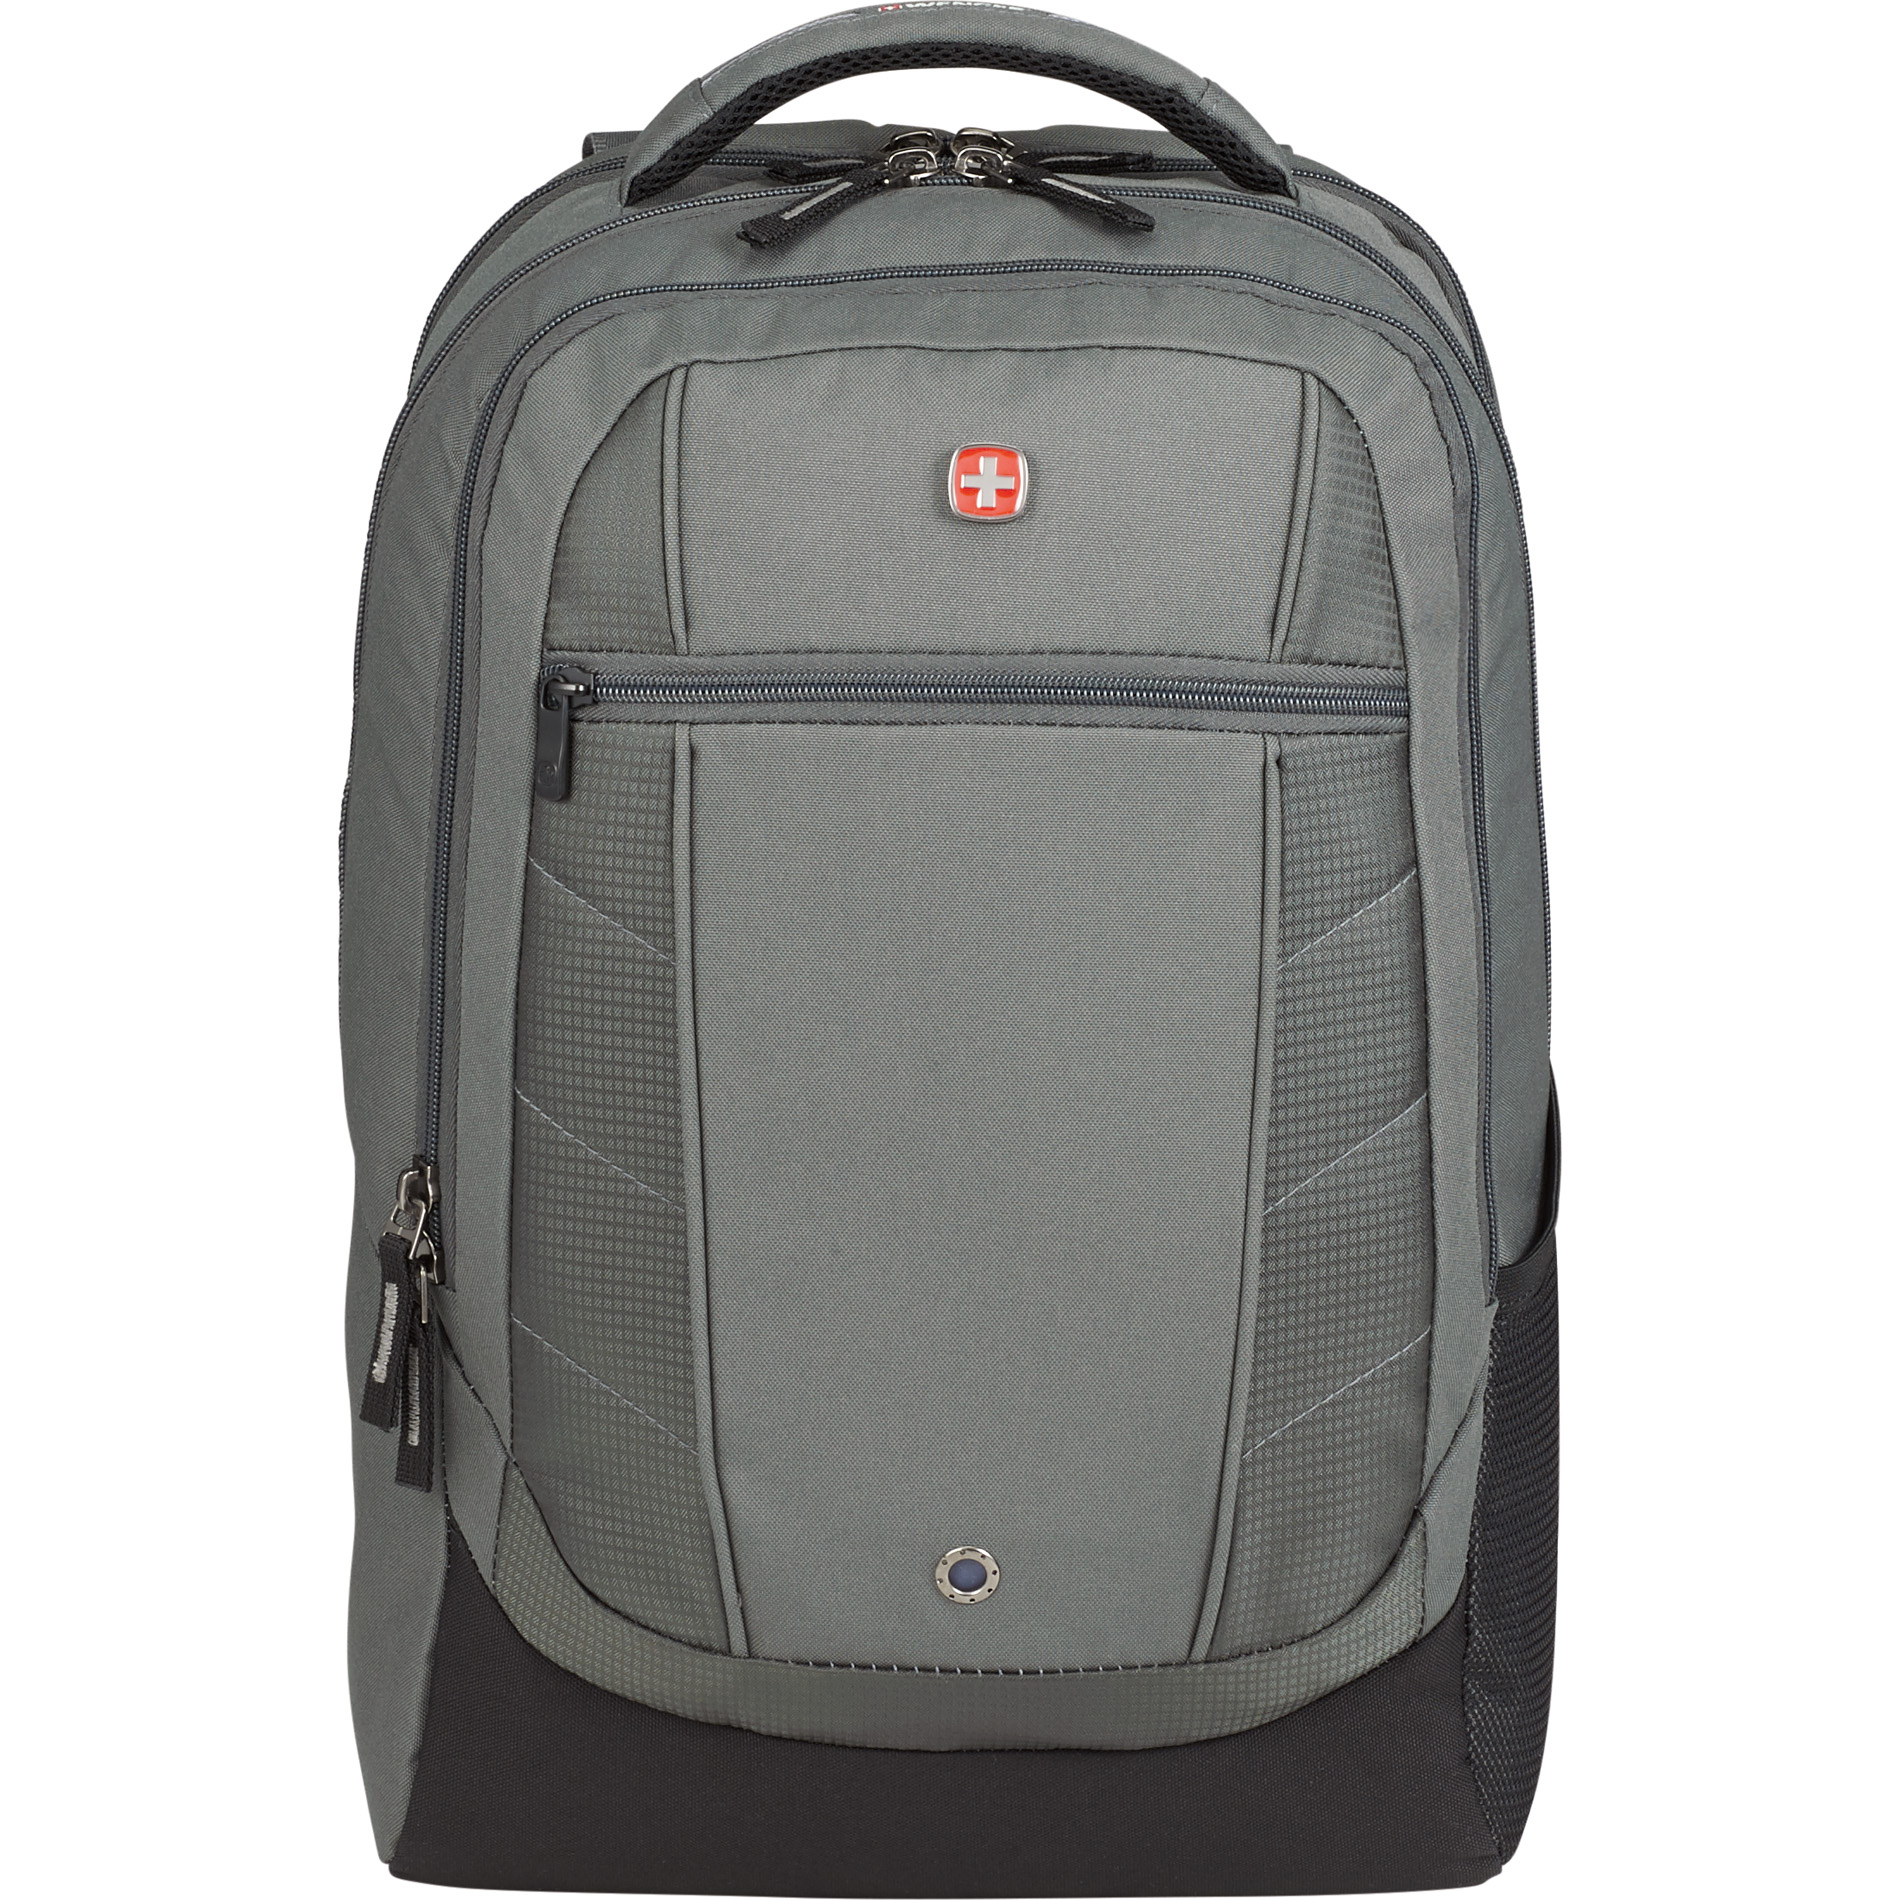 "Wenger 9550-39 - Pro Check 17"" Computer Backpack"